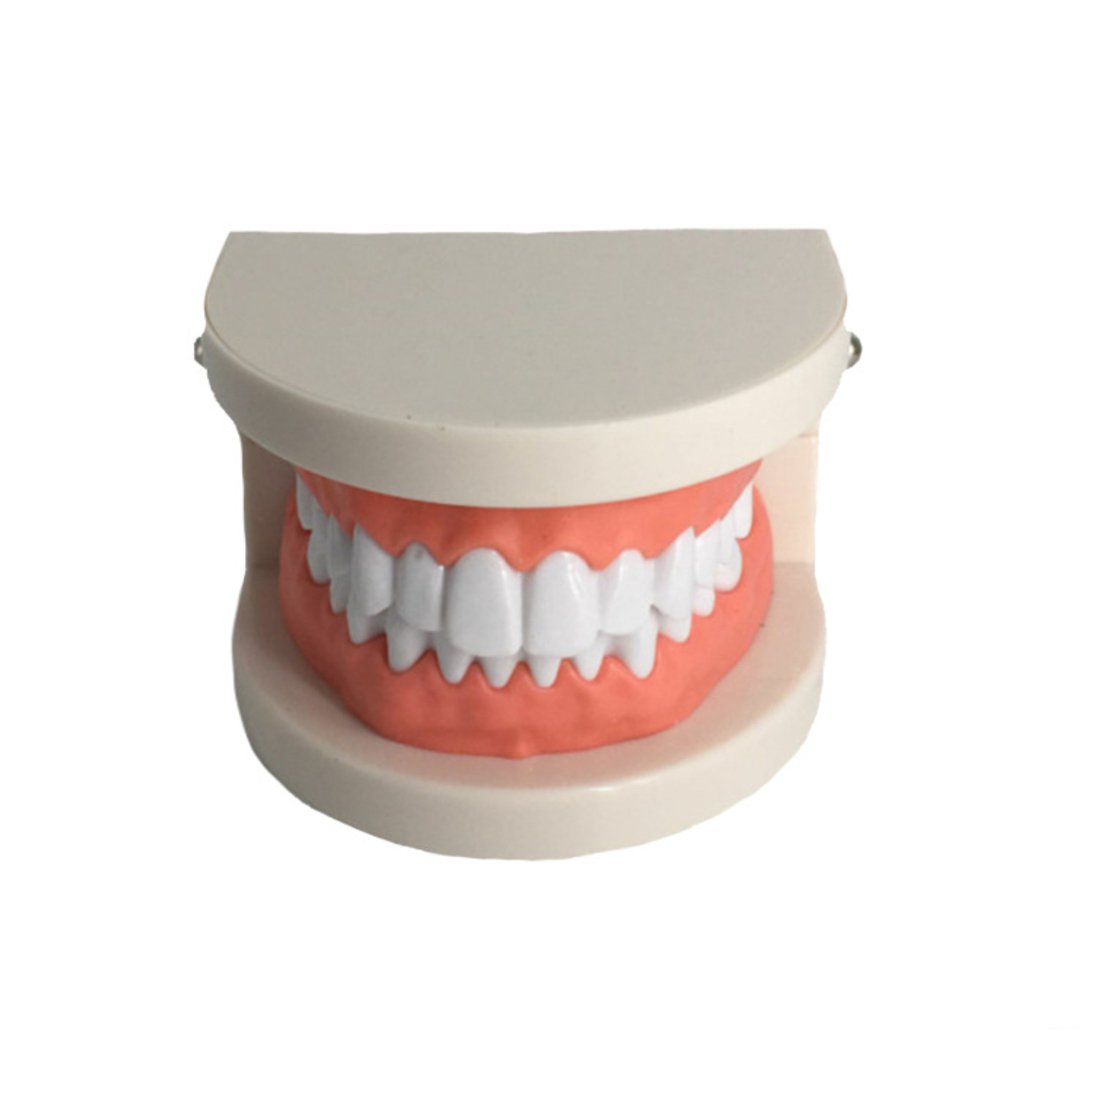 Dental Caries Study Tool Adult Standard Typodont Demonstration Teeth Model for Kids Oral Care Teaching by YOUYA DENTAL (Image #3)